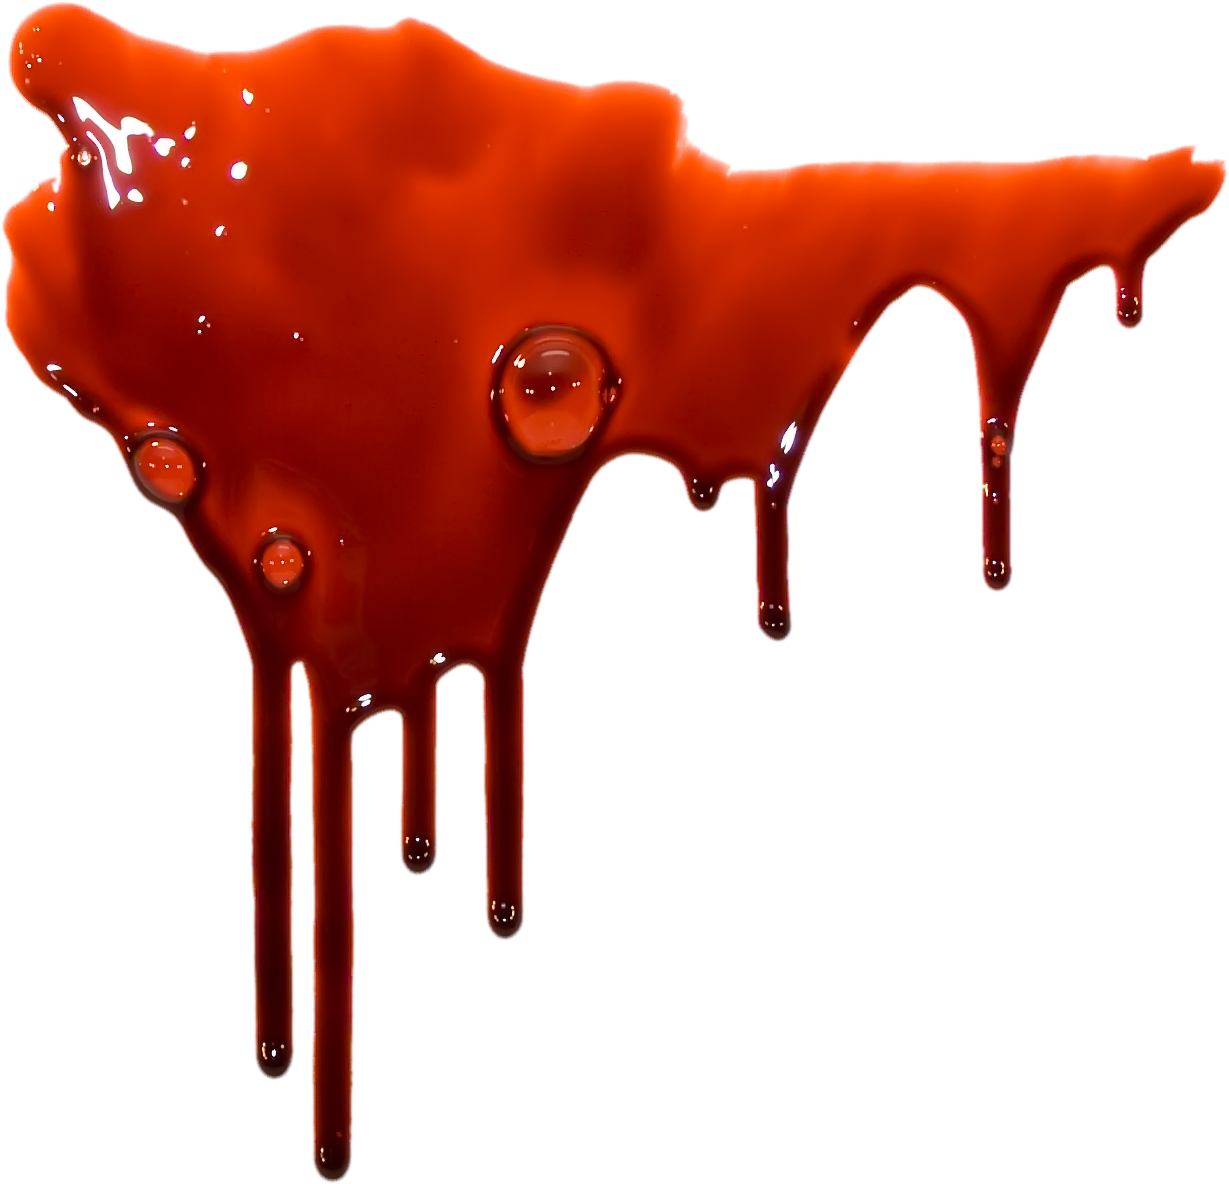 Mouth blood png. Images free download splashes